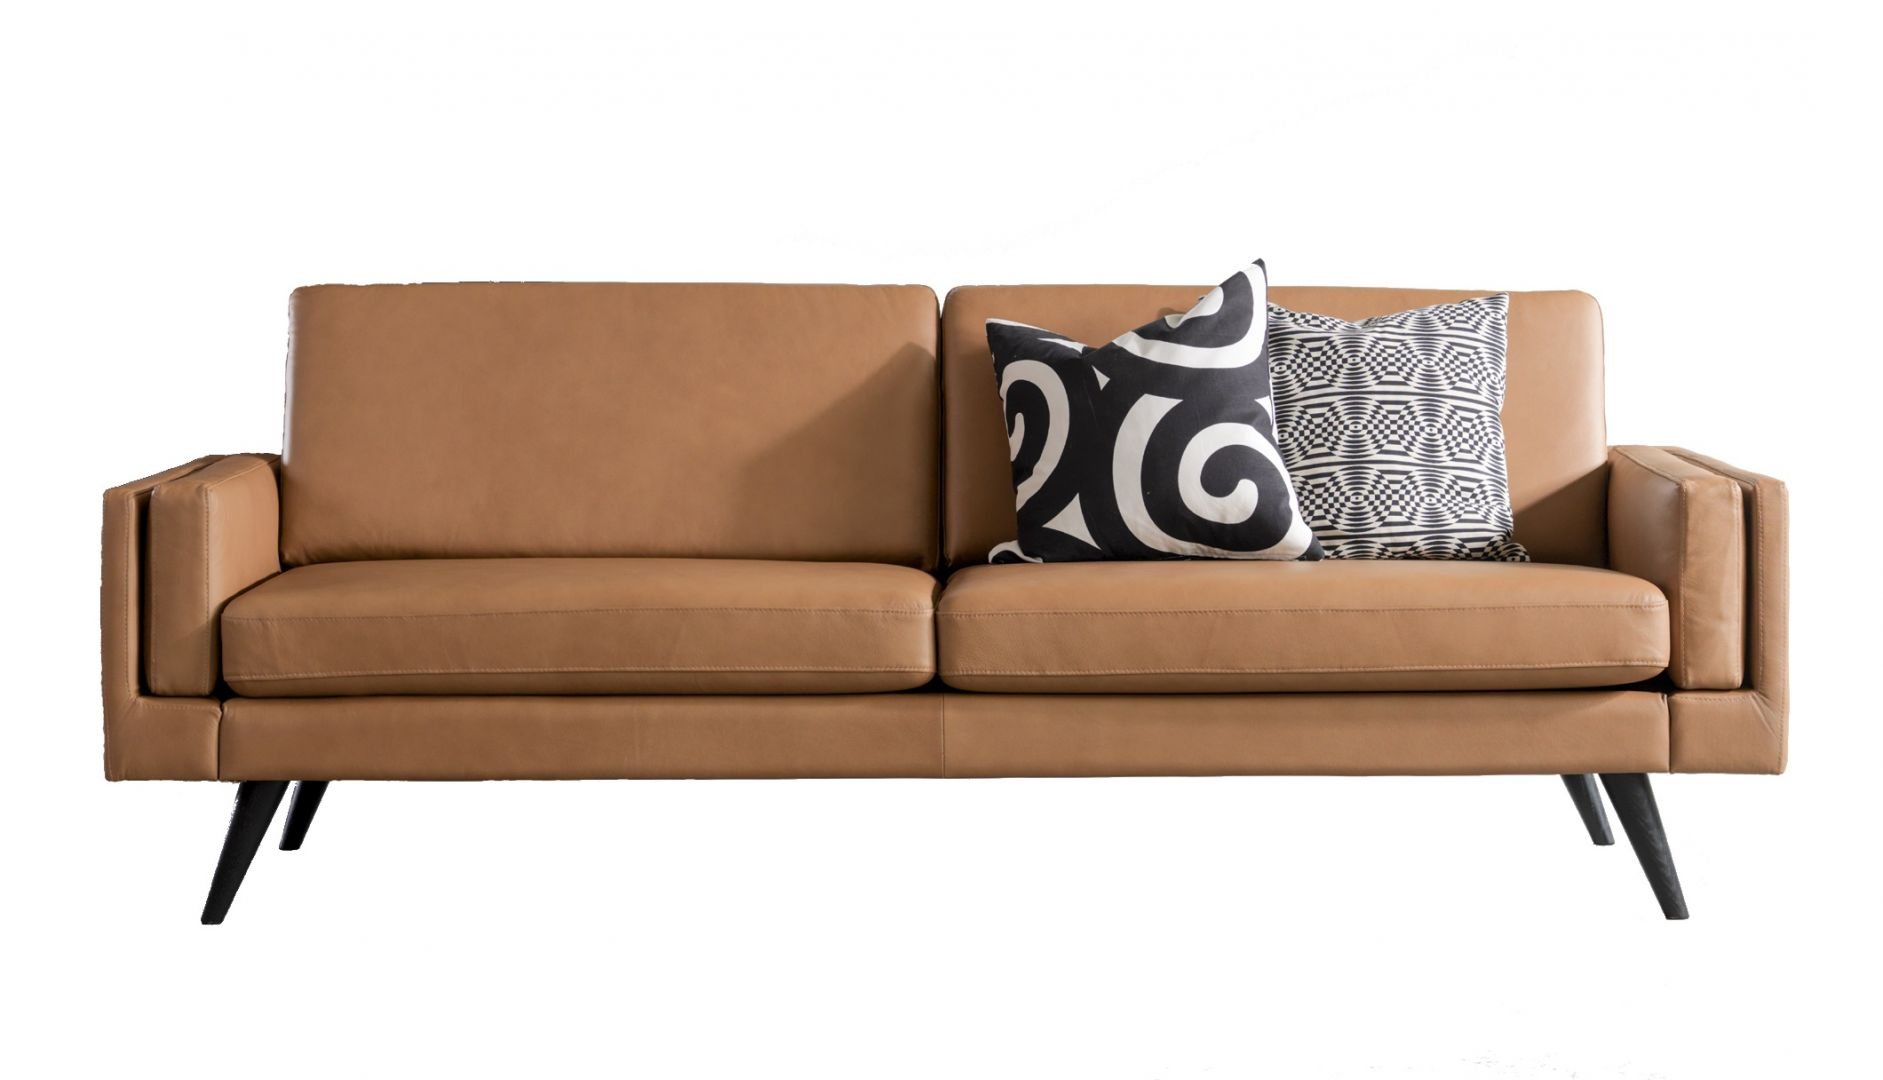 gus modern sofa sale slip covers target fjords nordic - arm 11 the century house madison, wi